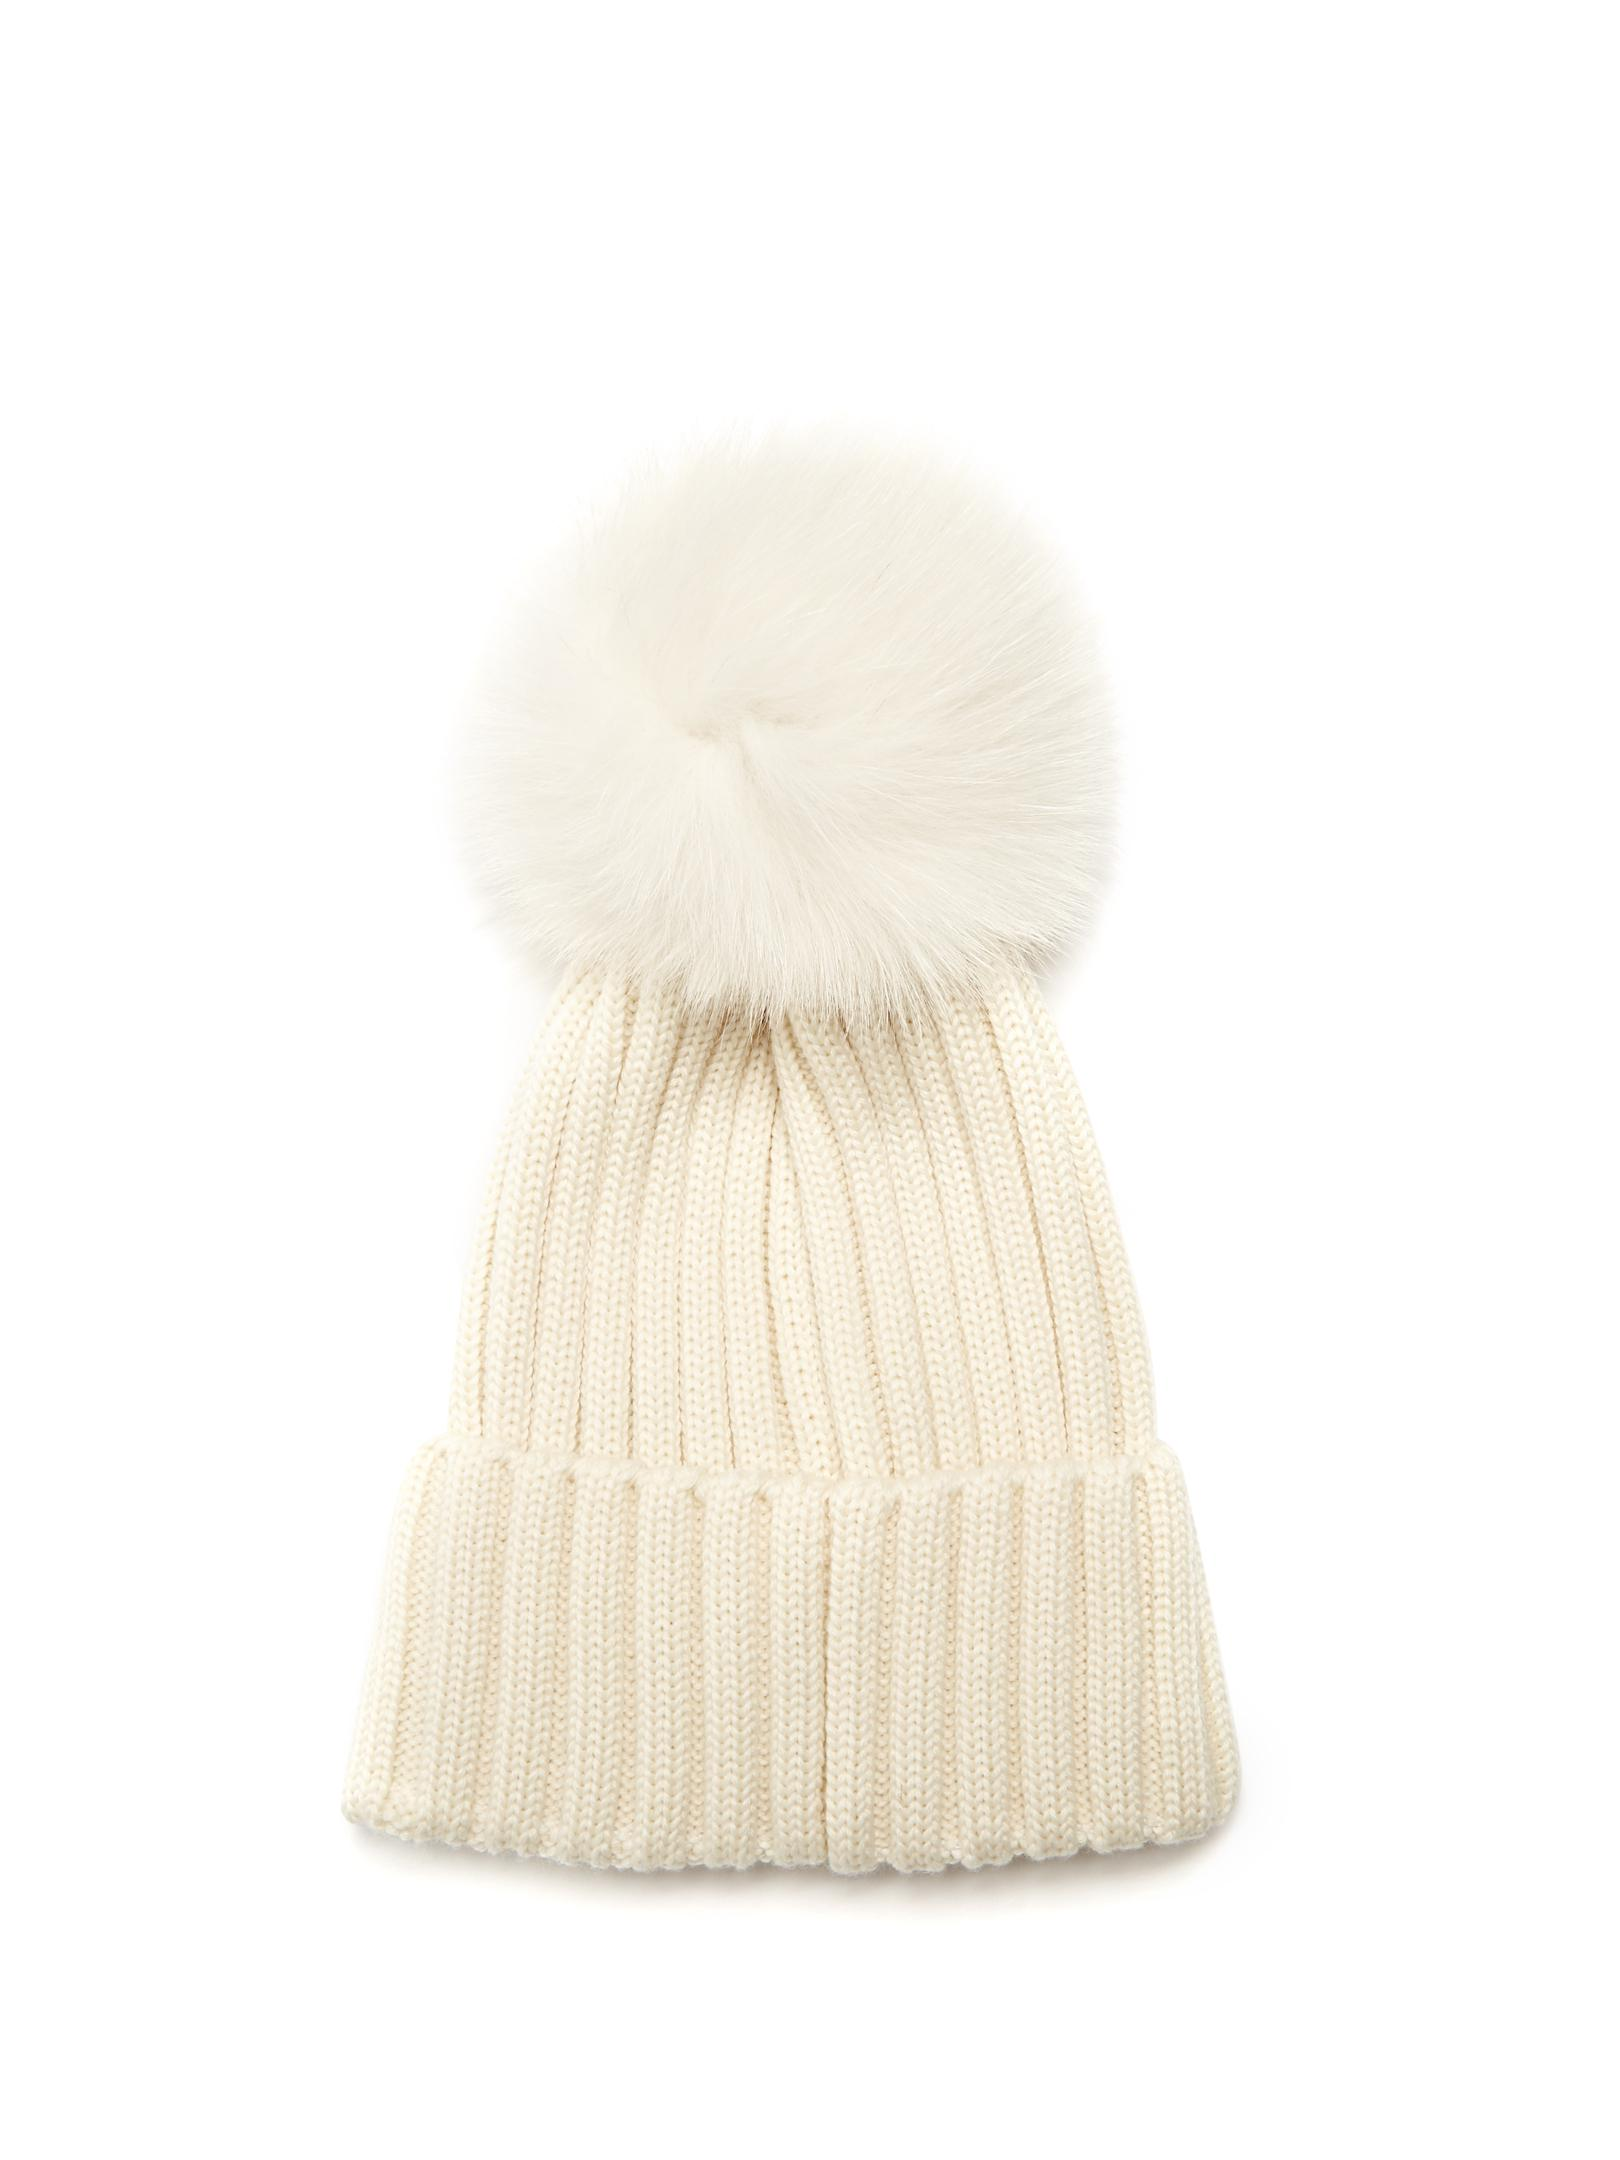 987cc58893d Lyst - Moncler Fur Pompom-embellished Wool Beanie Hat in White